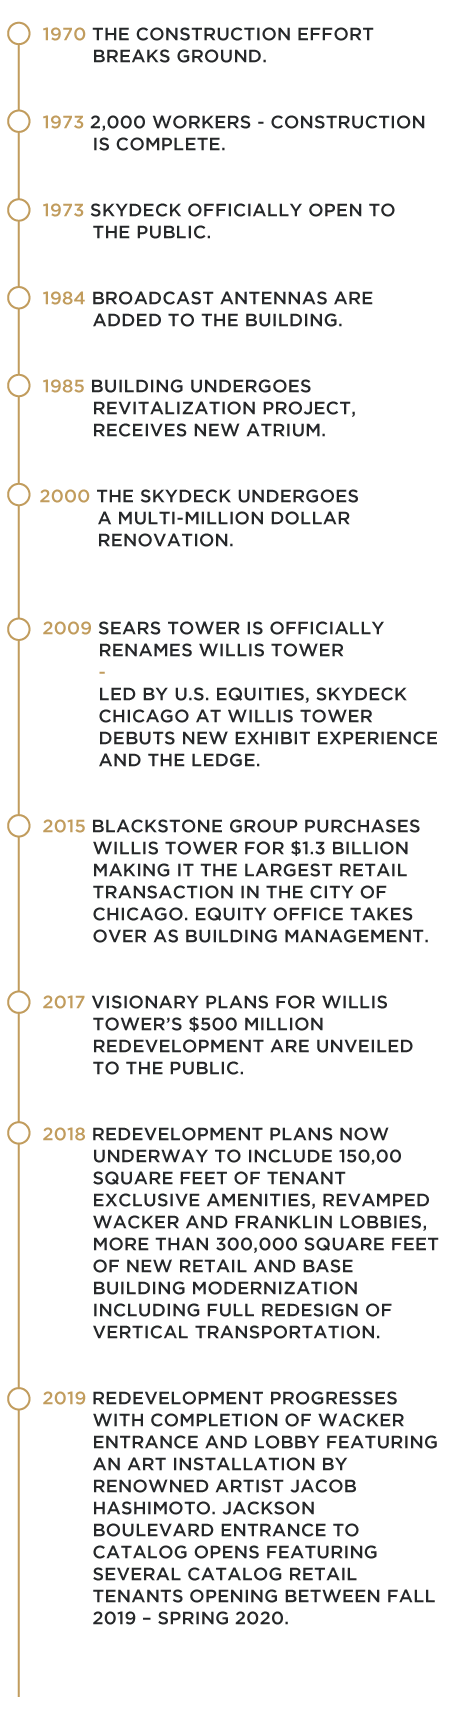 History of the Willis Tower